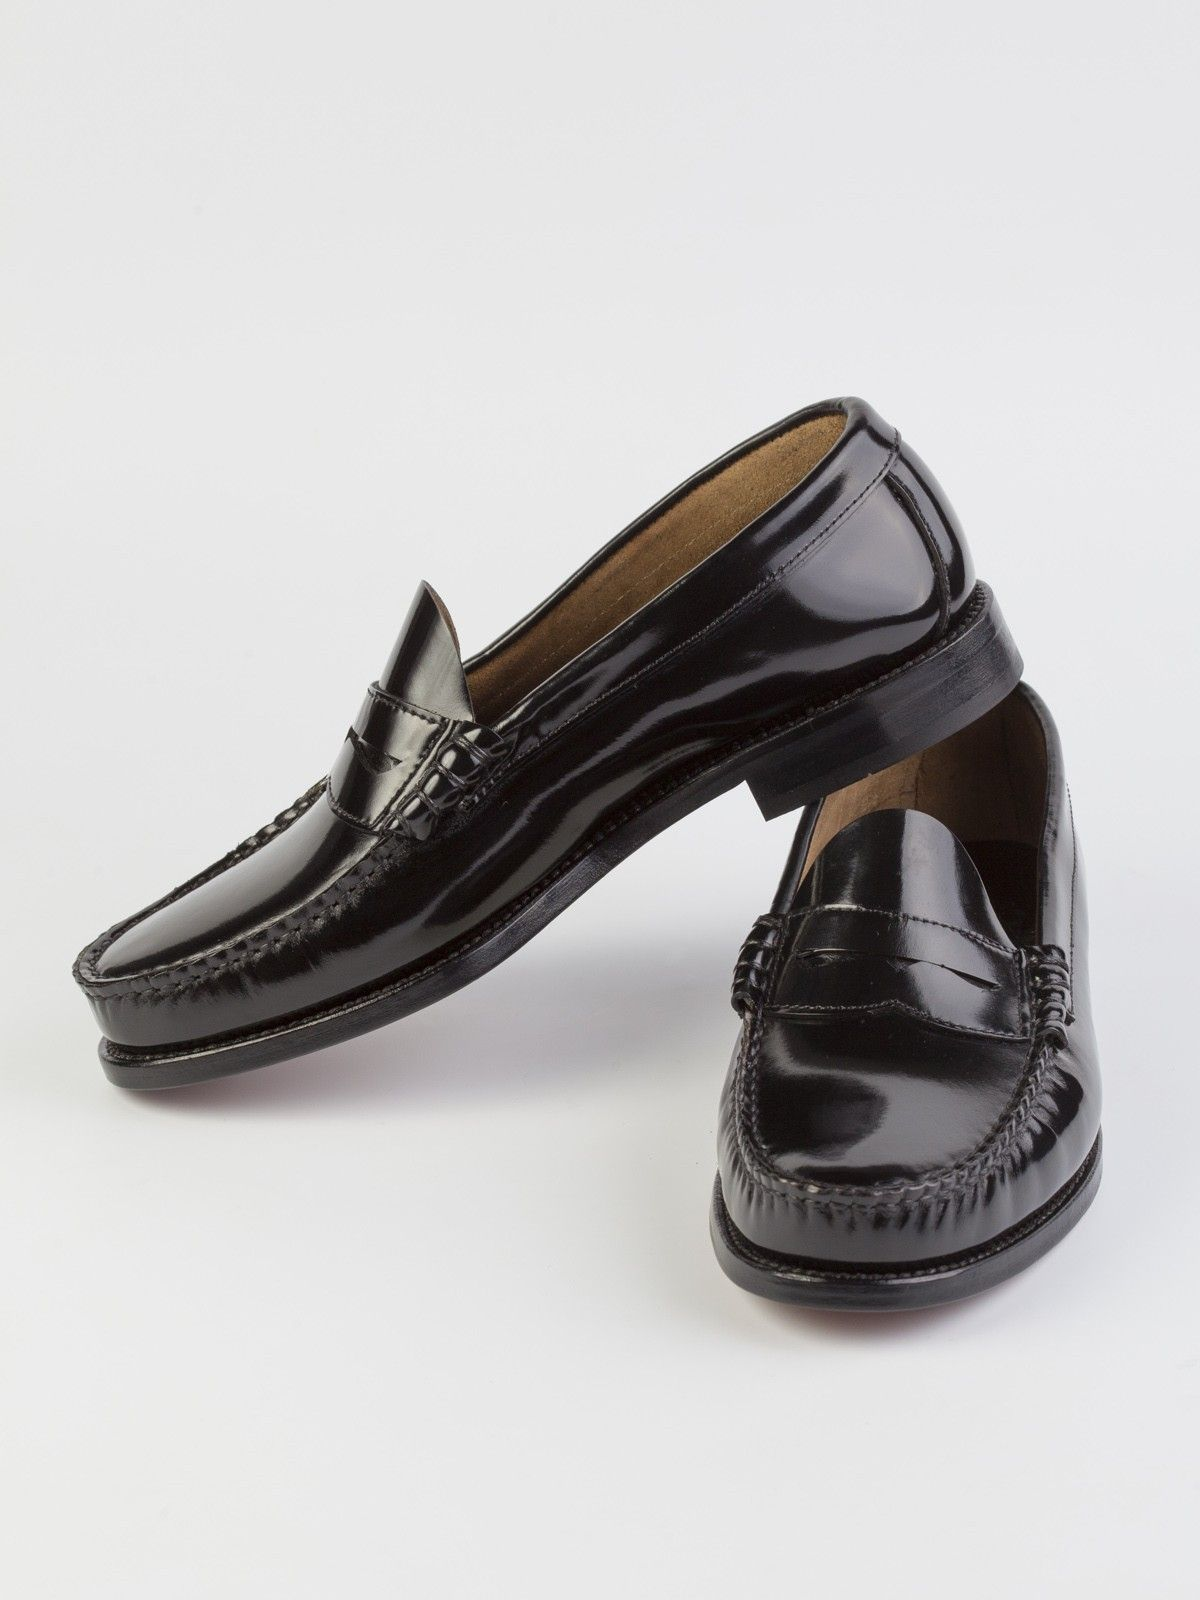 0061de6cd4b Penny Loafer - Not so much a shoe as style icon. Loafers landed on that  cushion sole in the 1930 s